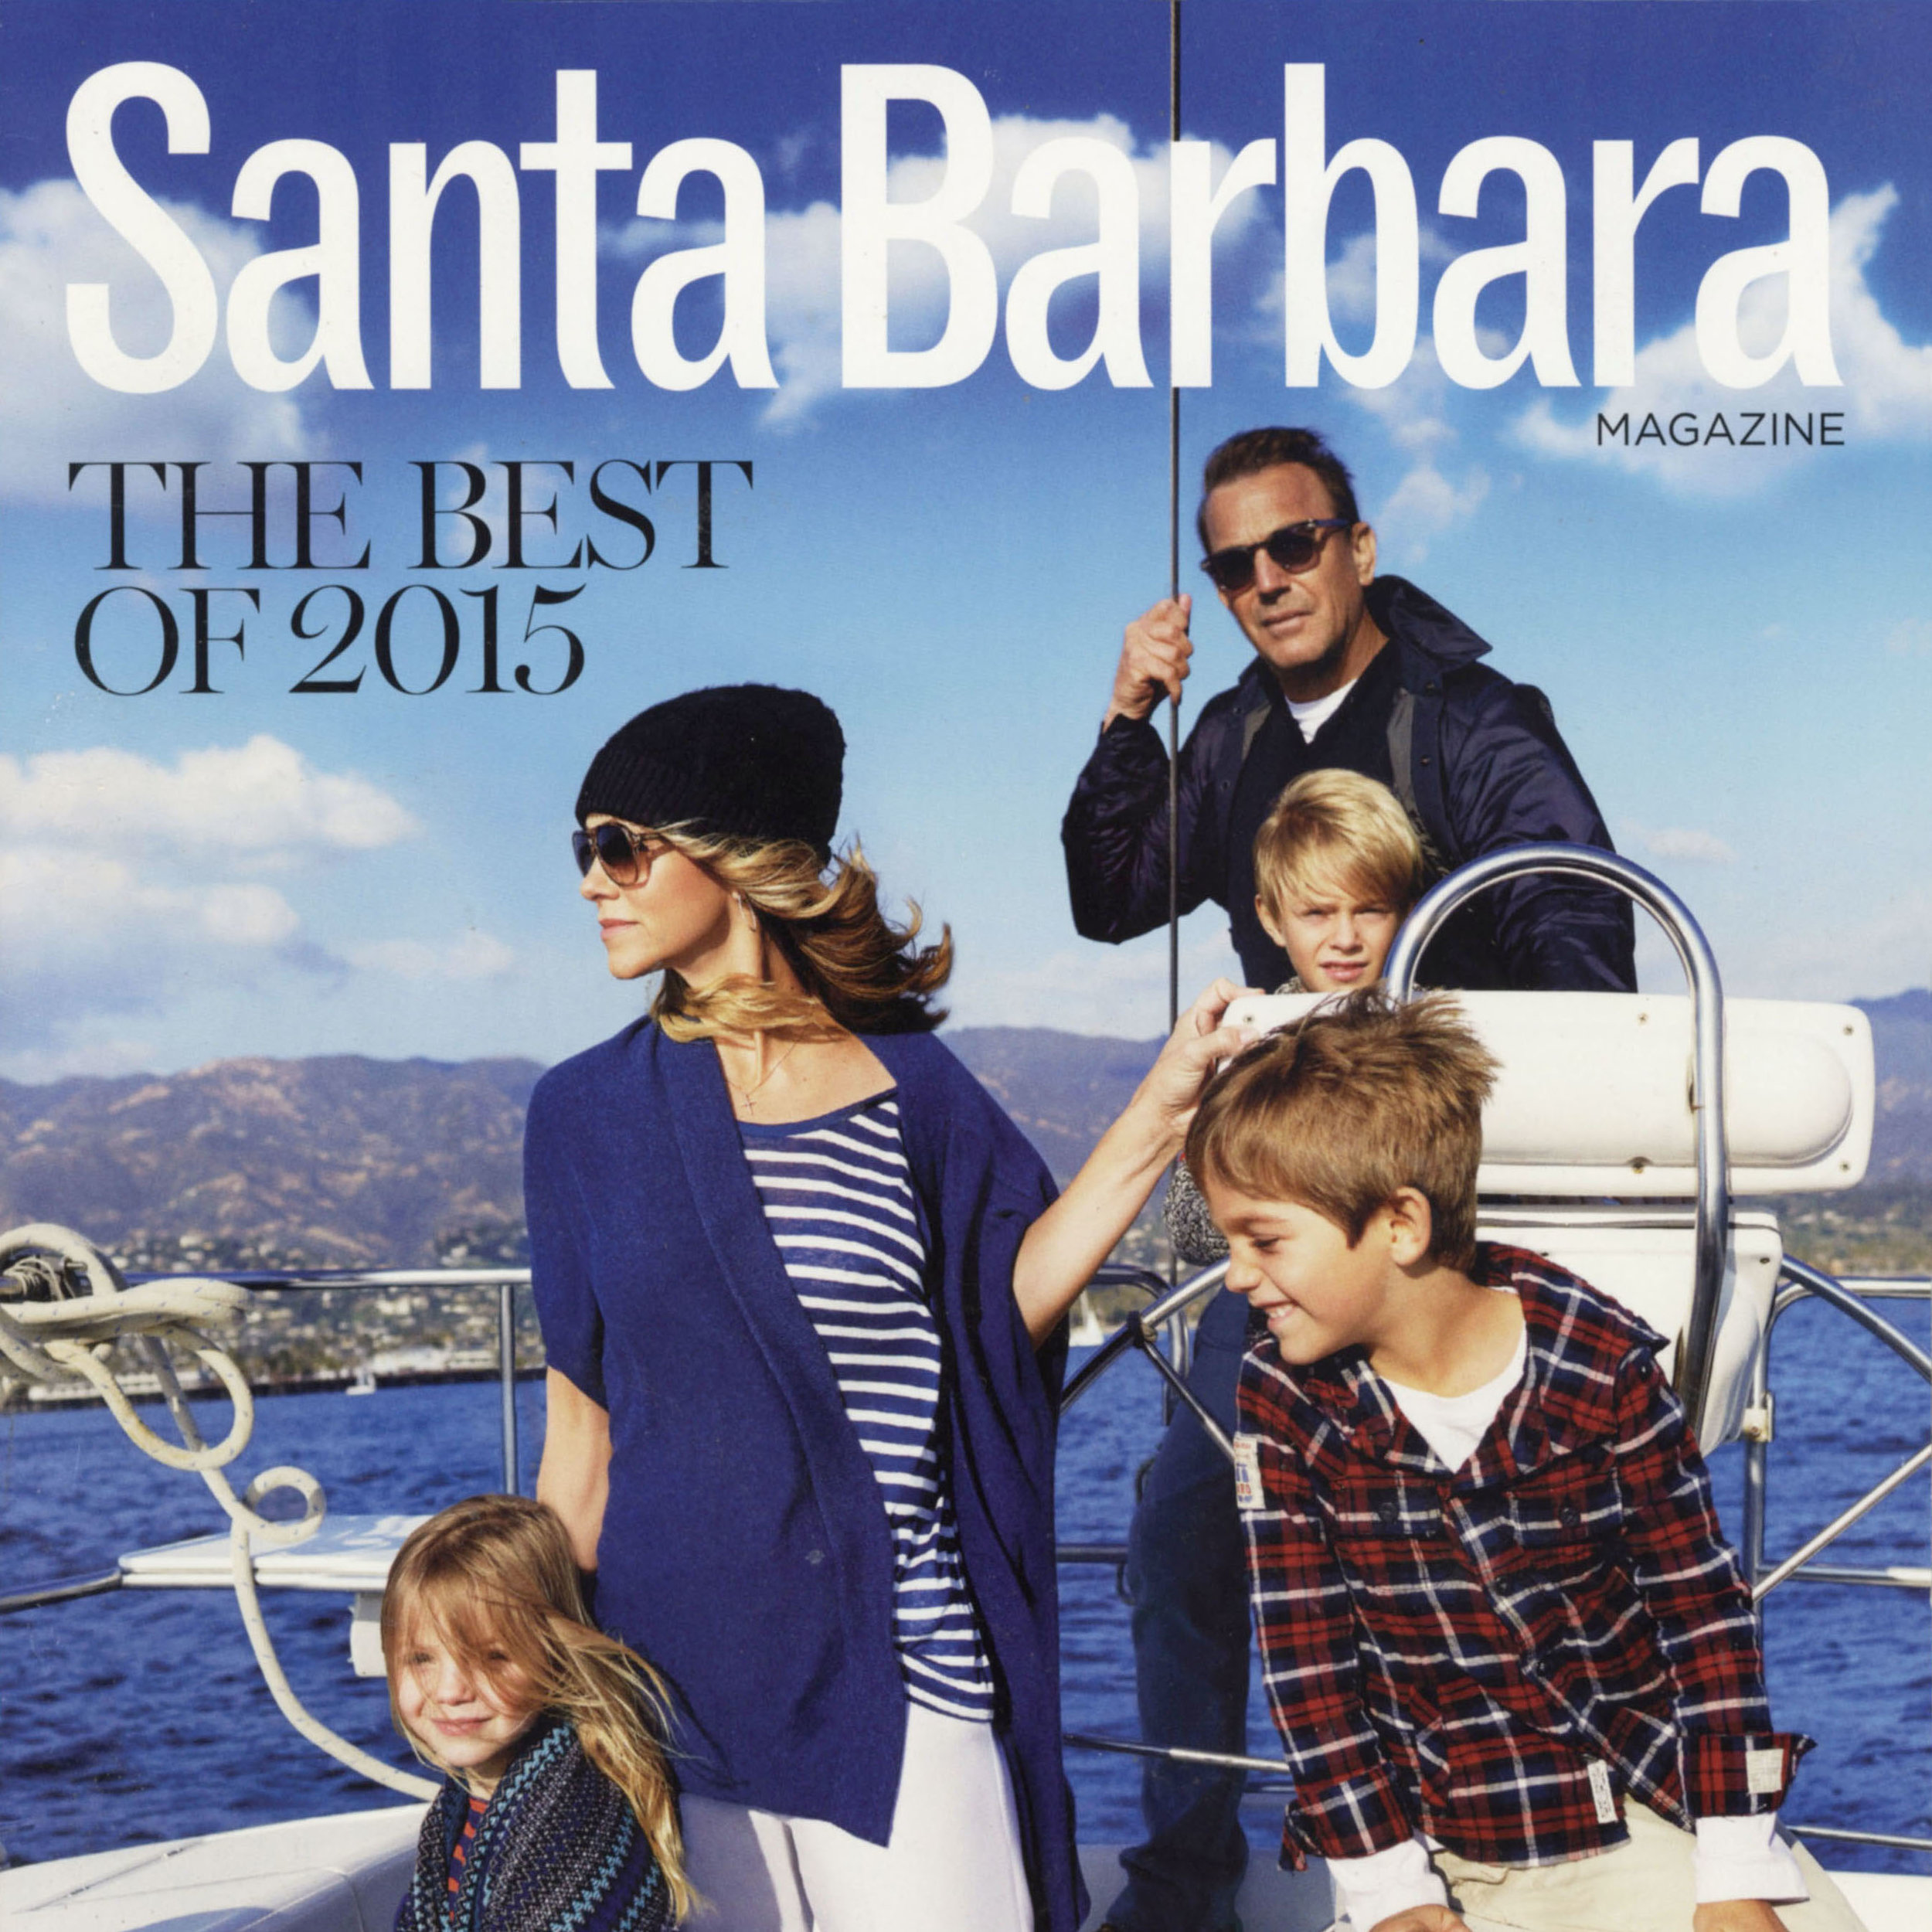 Santa Barbara Magazine, Best of 2015